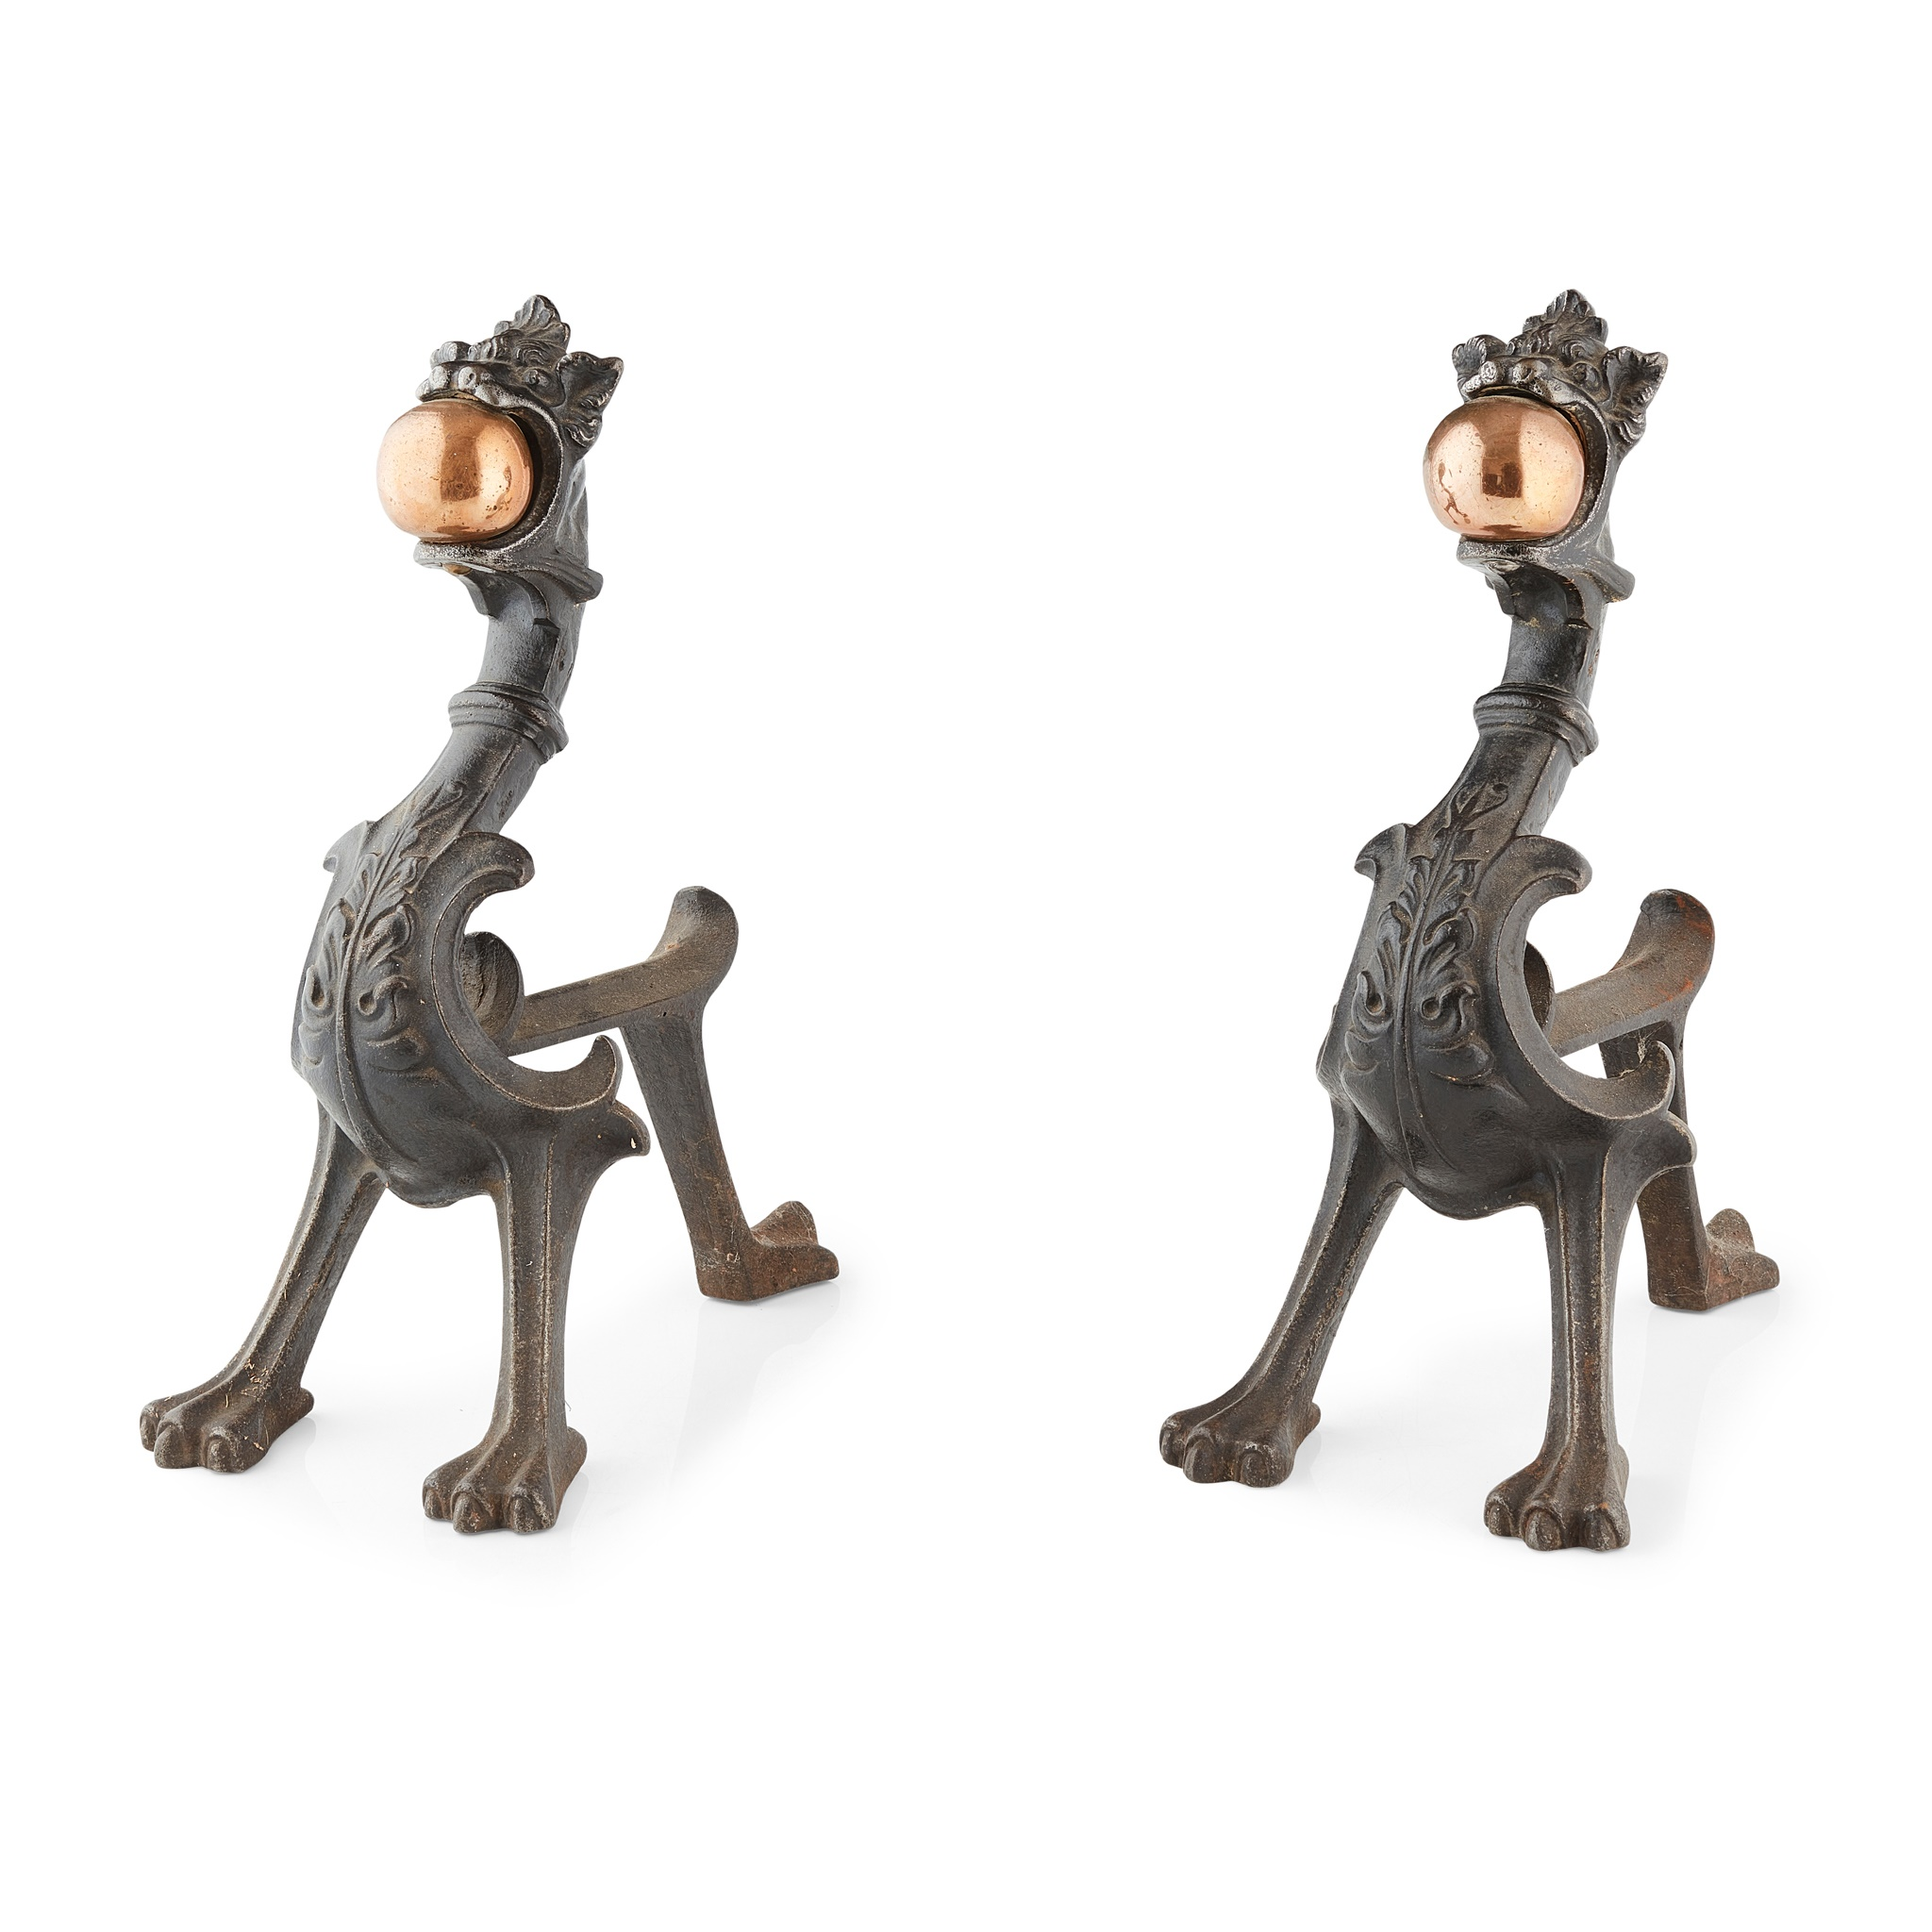 PAIR OF CAST IRON AND COPPER FIREDOGS 19TH CENTURY